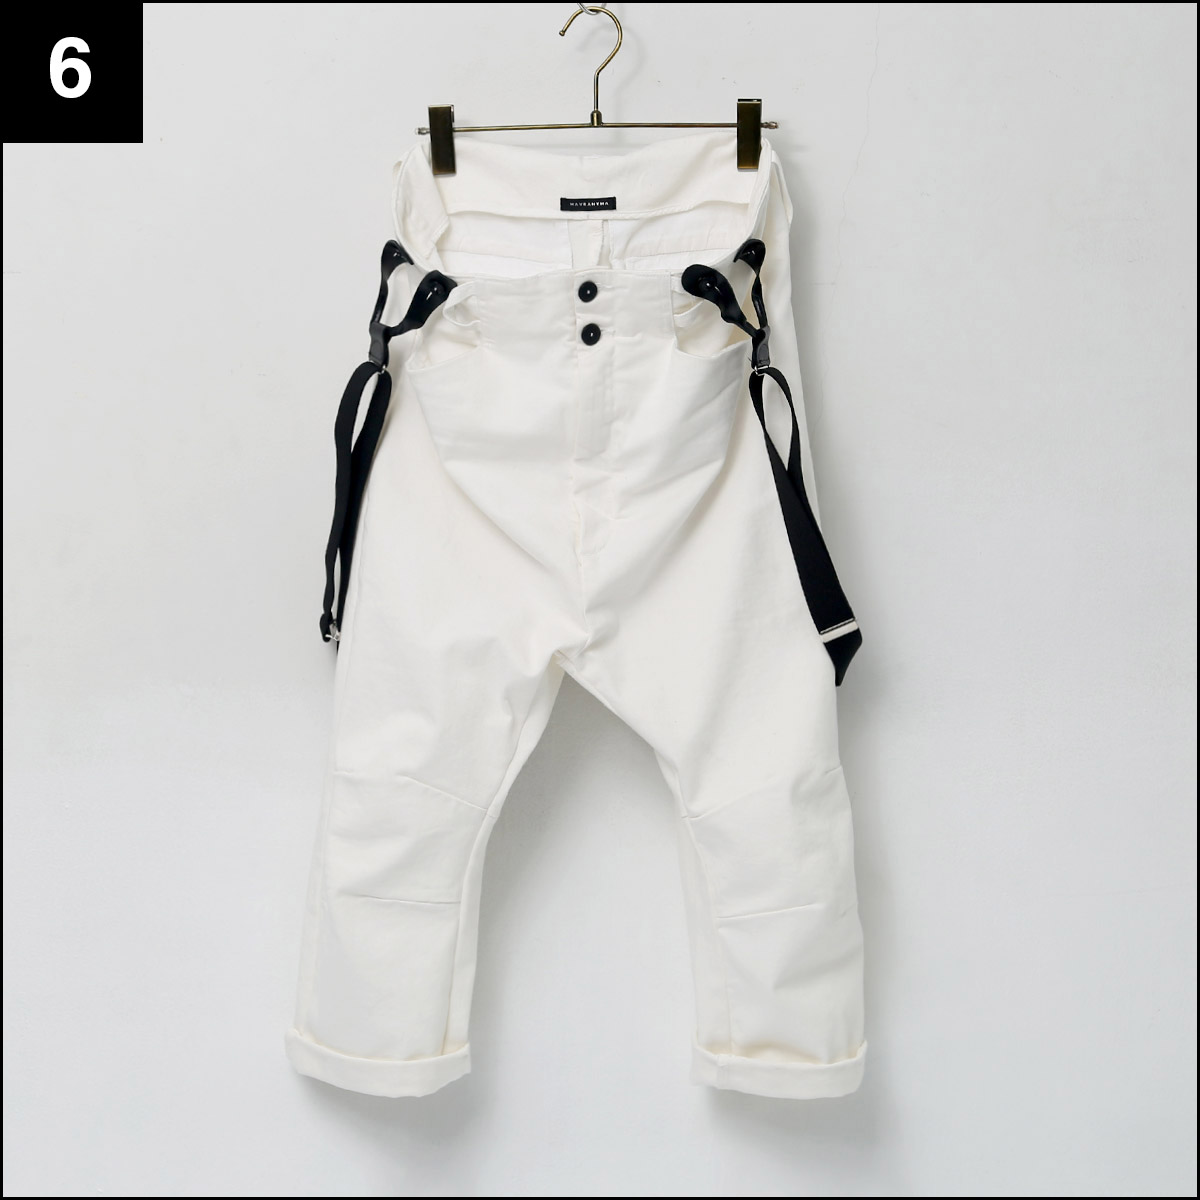 MAVRANYMA_SUSPENDER PANTS